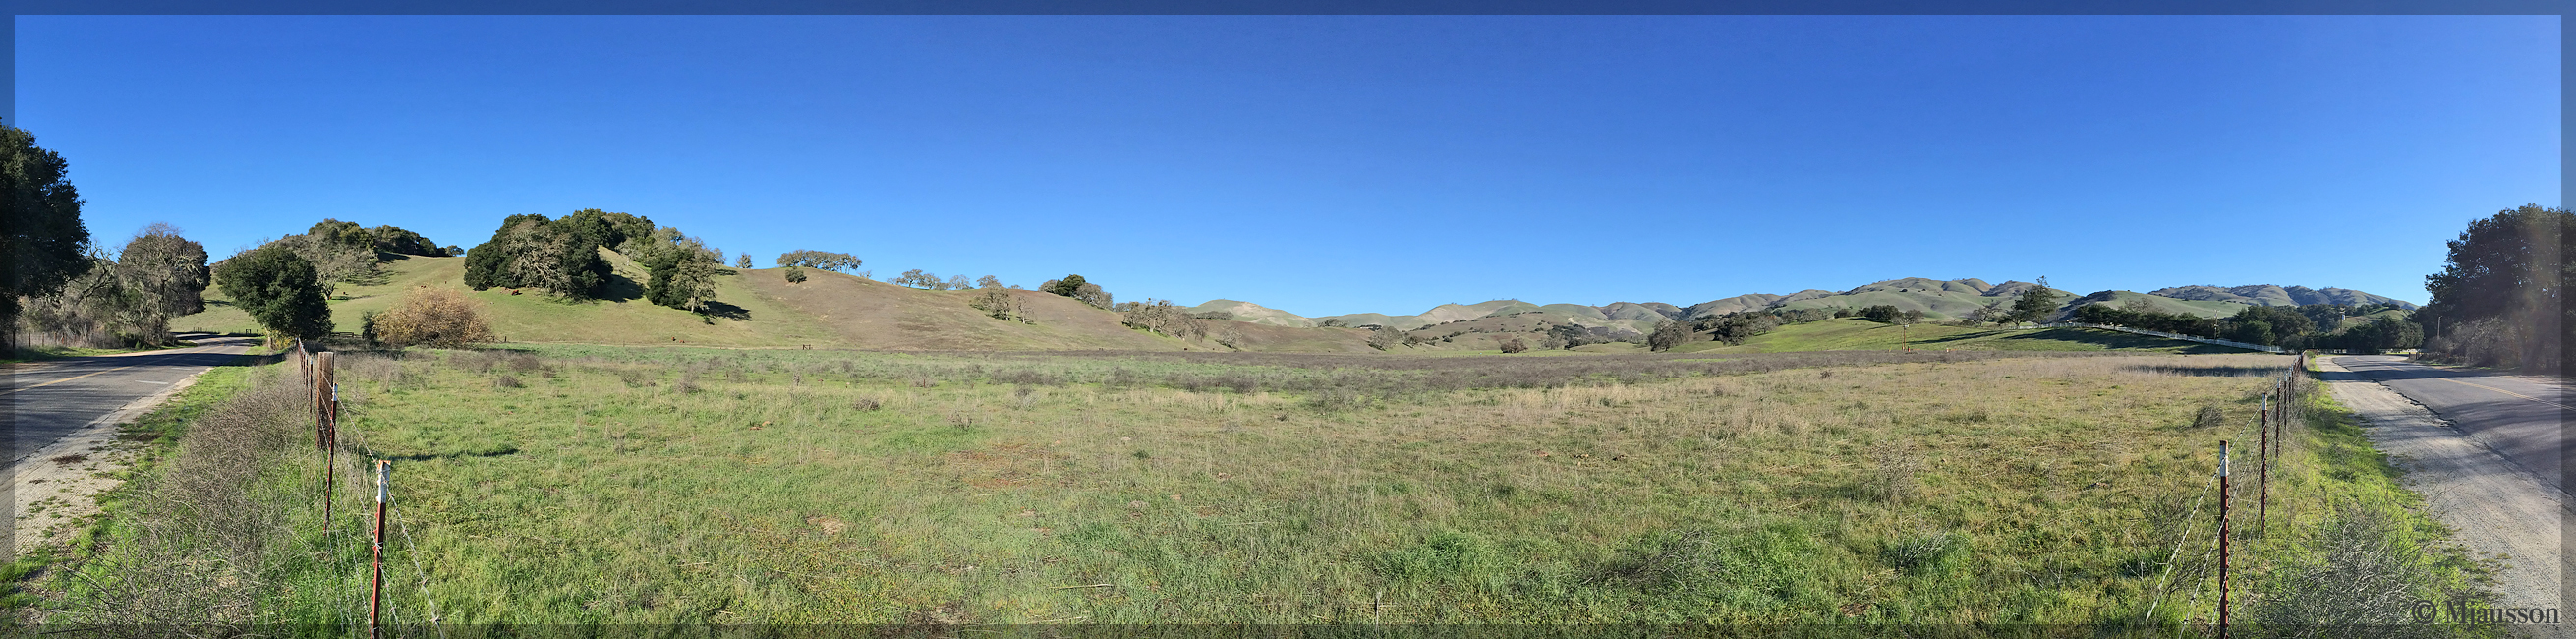 Carmel Valley Road Panorama 1